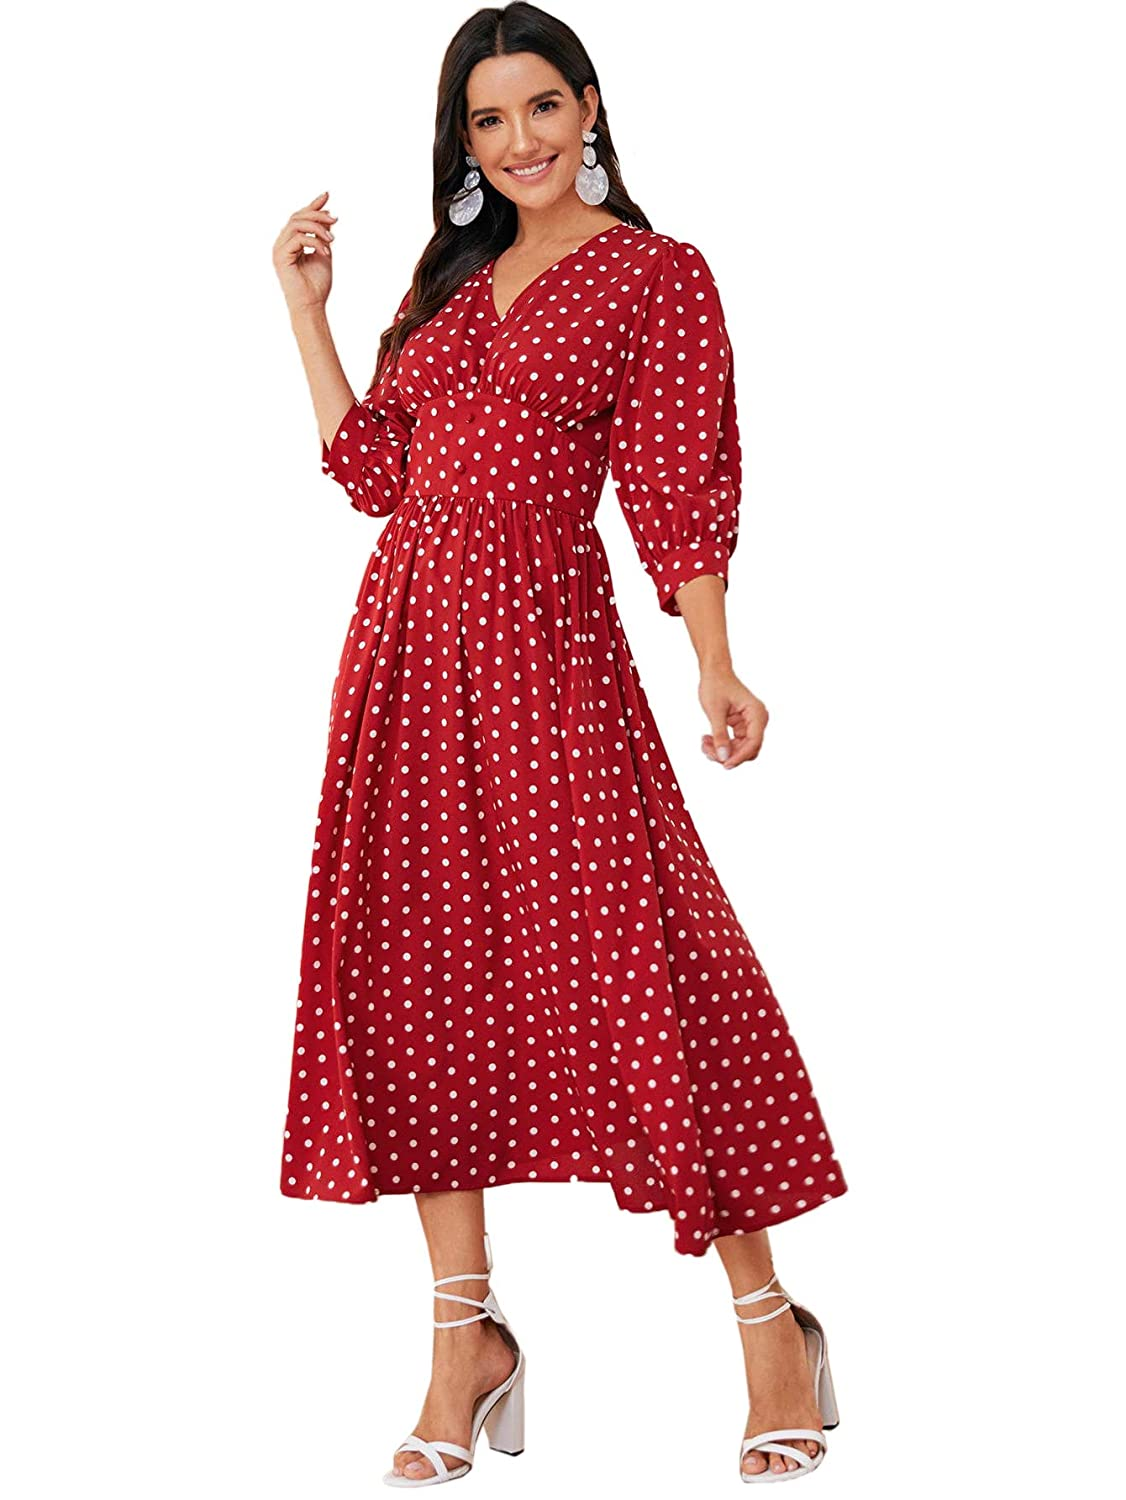 Cottagecore Dresses Aesthetic, Granny, Vintage Verdusa Womens Polka Dot Buttoned Bishop 3/4 Sleeve Fit & Flare Maxi Dress $37.99 AT vintagedancer.com